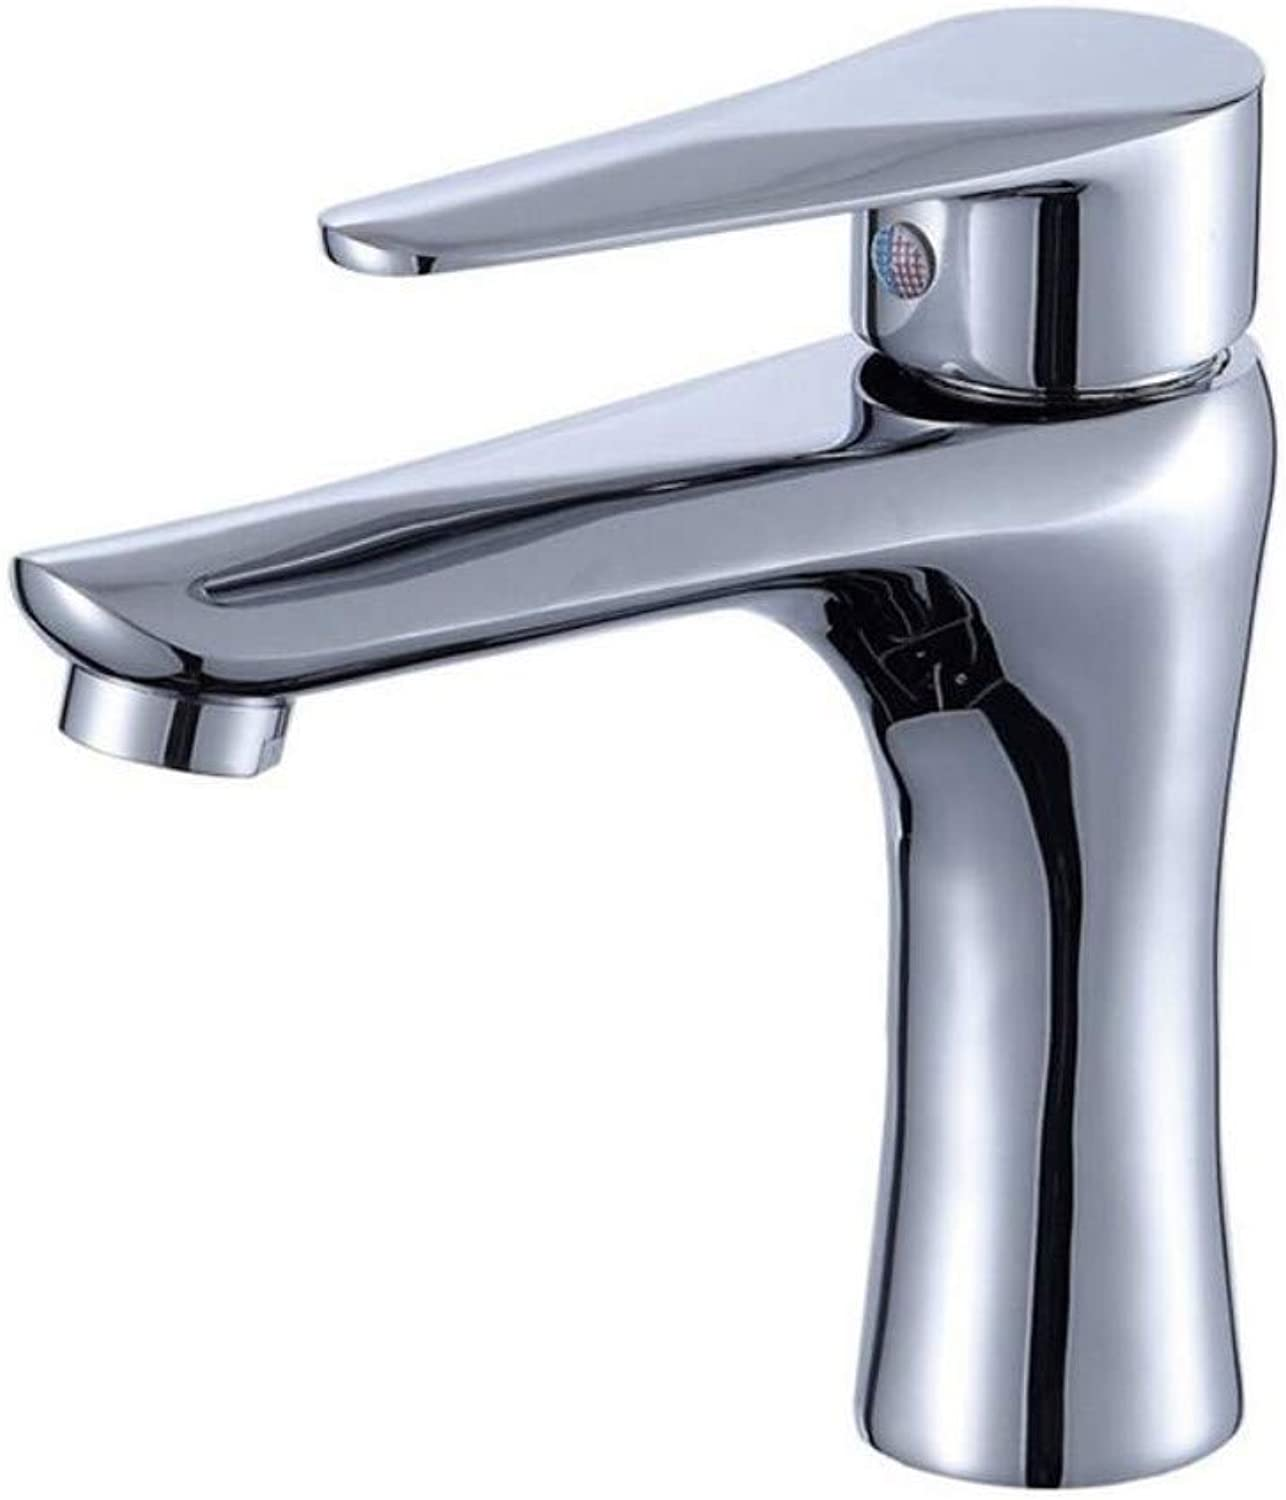 Bathroom Faucet Copper Hot and Cold Kitchen Sink Taps Kitchen Faucet Faucet Hot and Cold All-Copper Basin